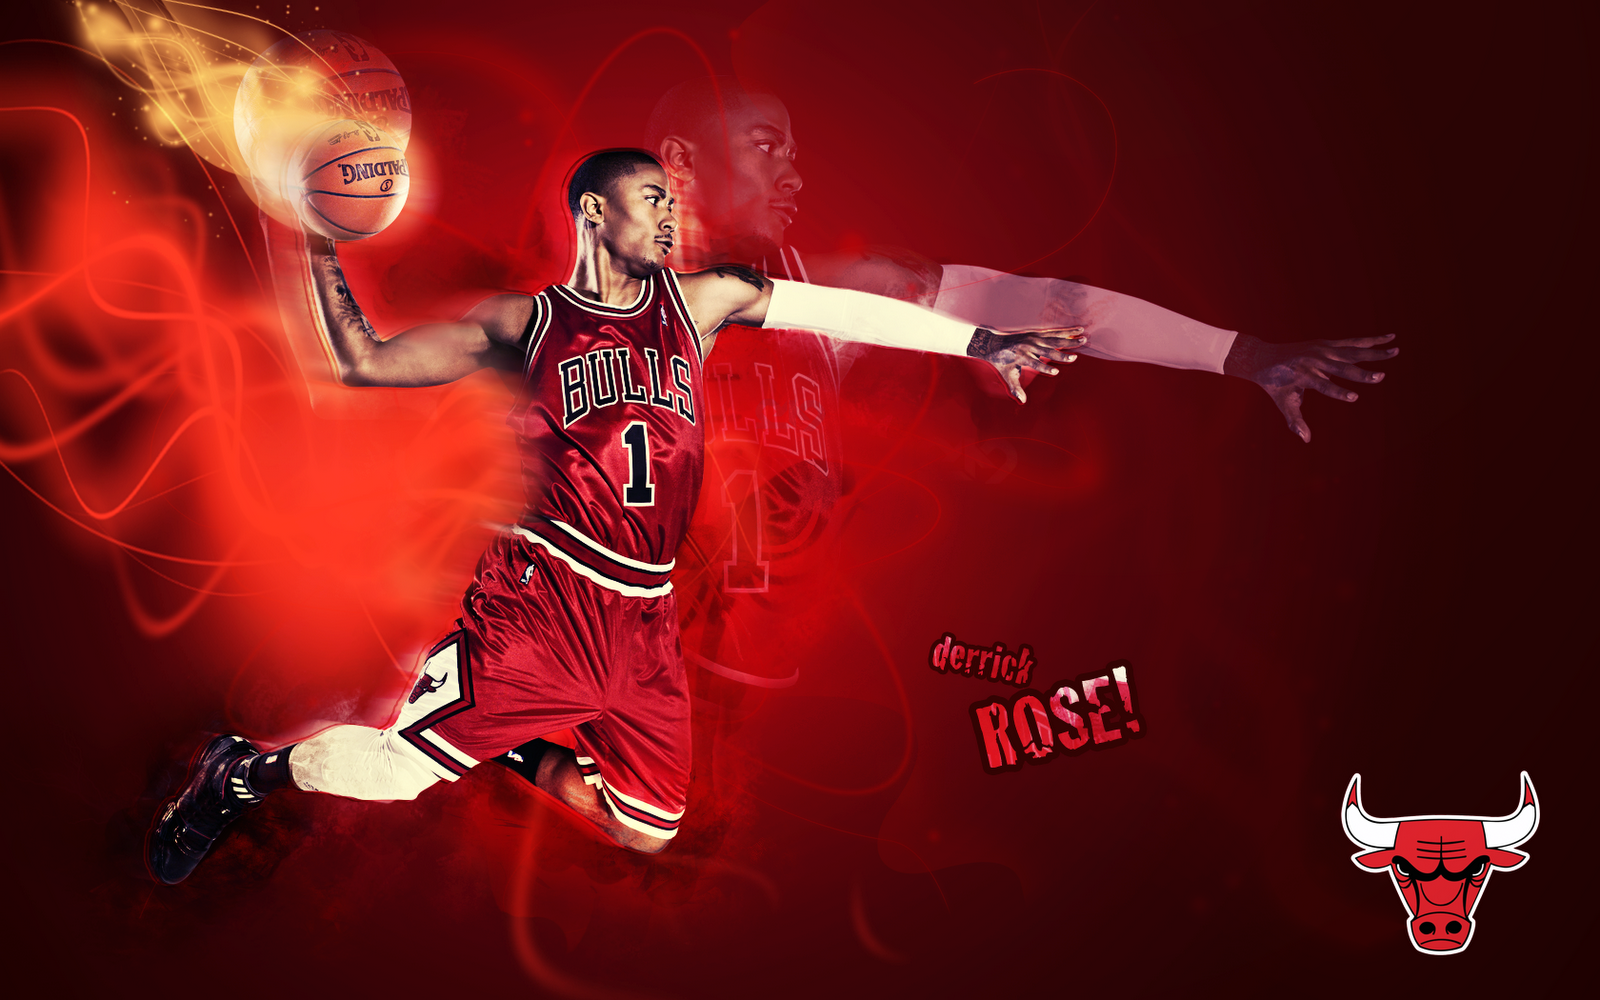 Derrick Rose basketball wallpapers 1600x1000